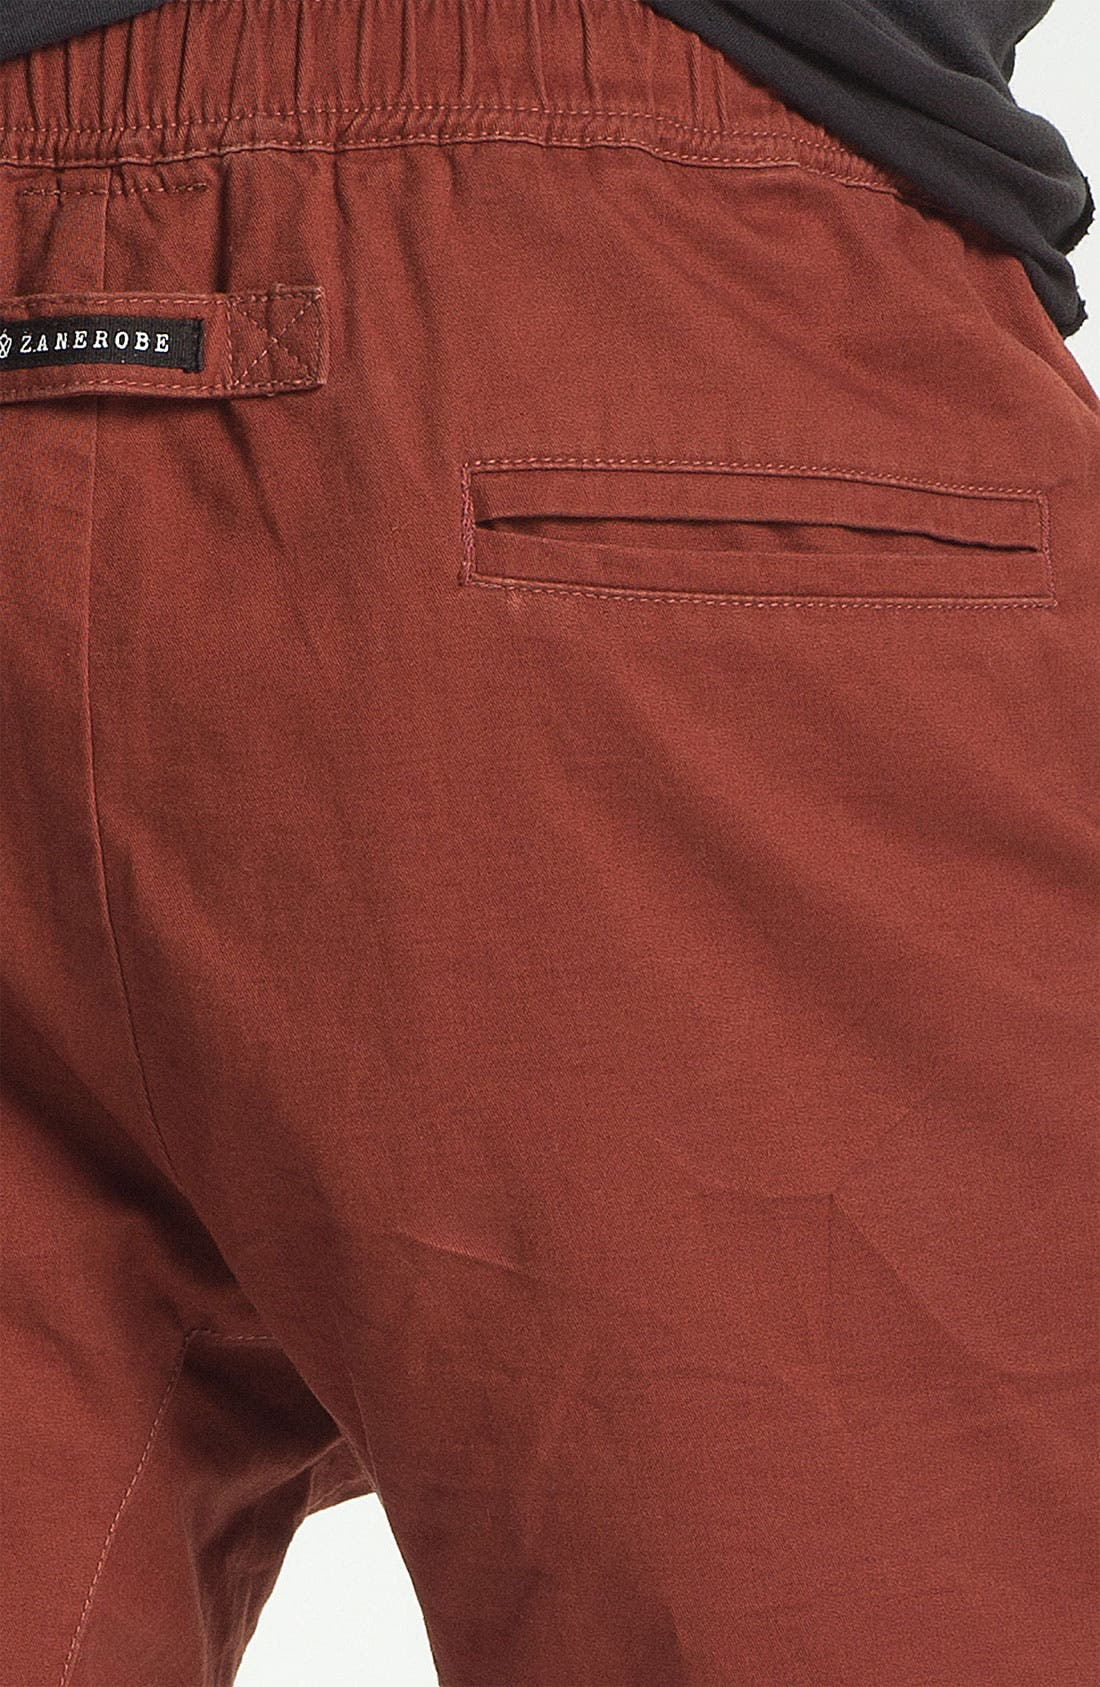 'Sureshot' Chino Shorts,                             Alternate thumbnail 3, color,                             640